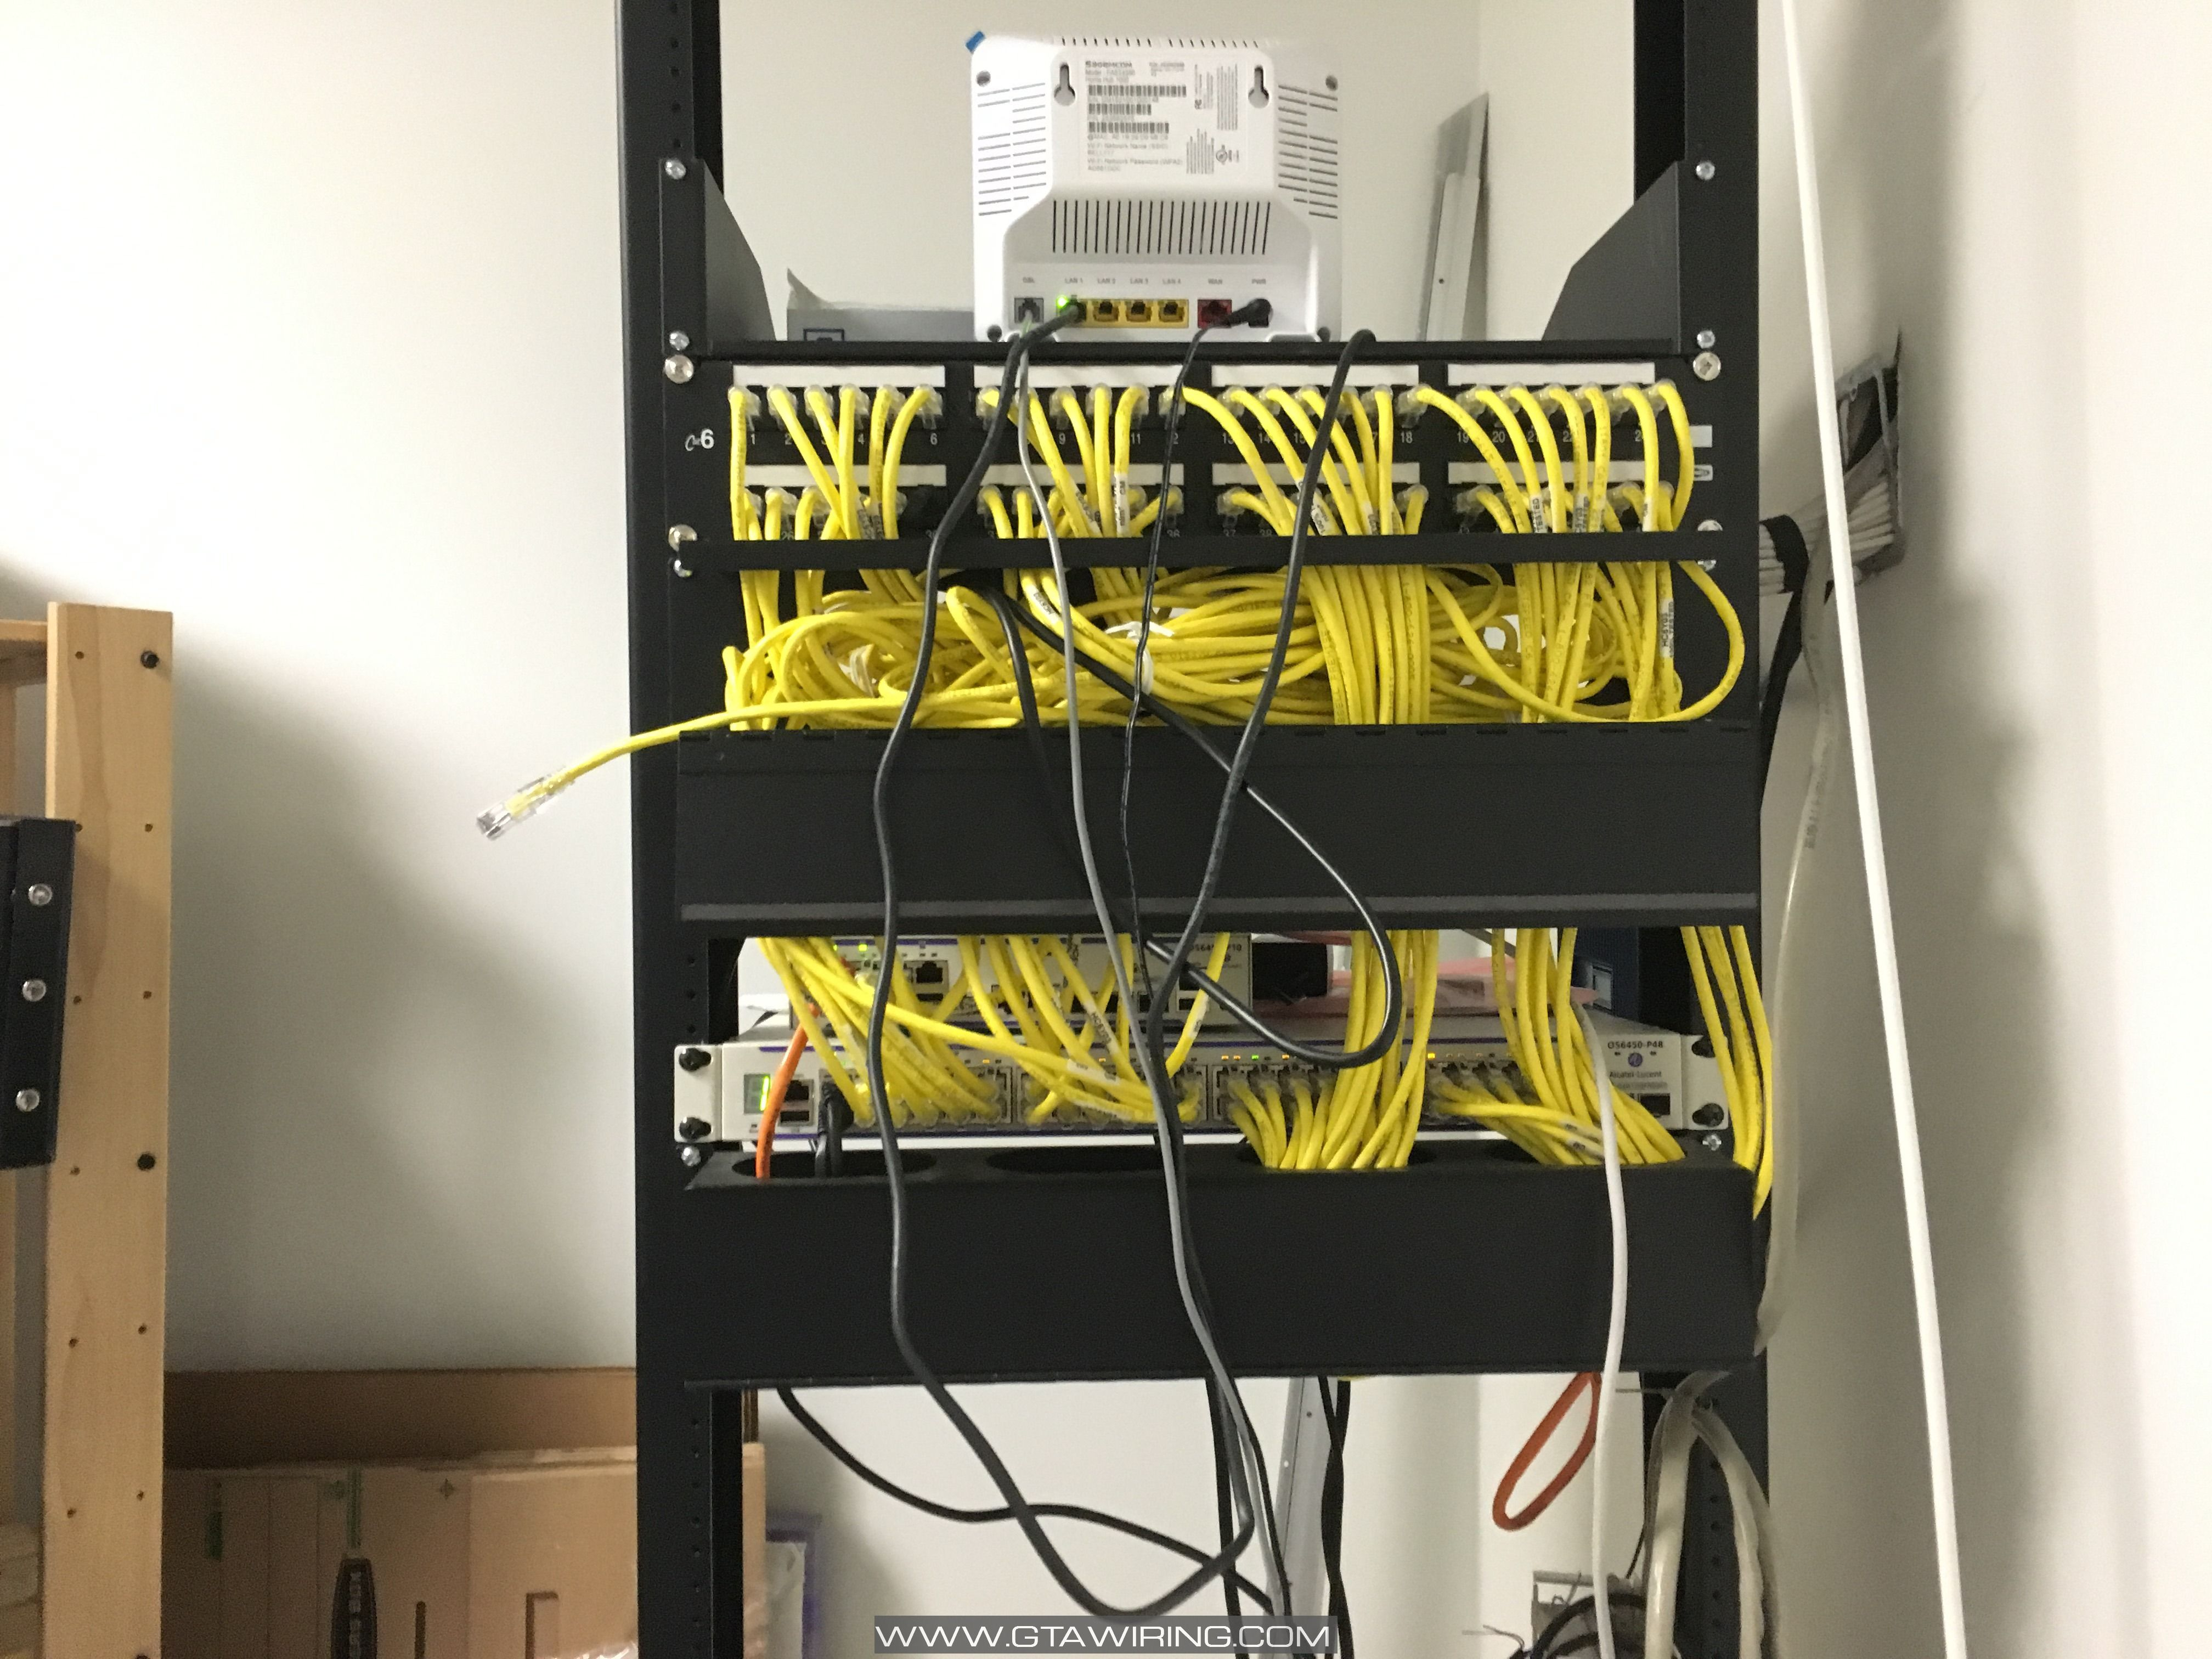 Server Rack With Internet Modem And Switch Data Voice Tv Wiring Diagram For Smc Walls Security Camera